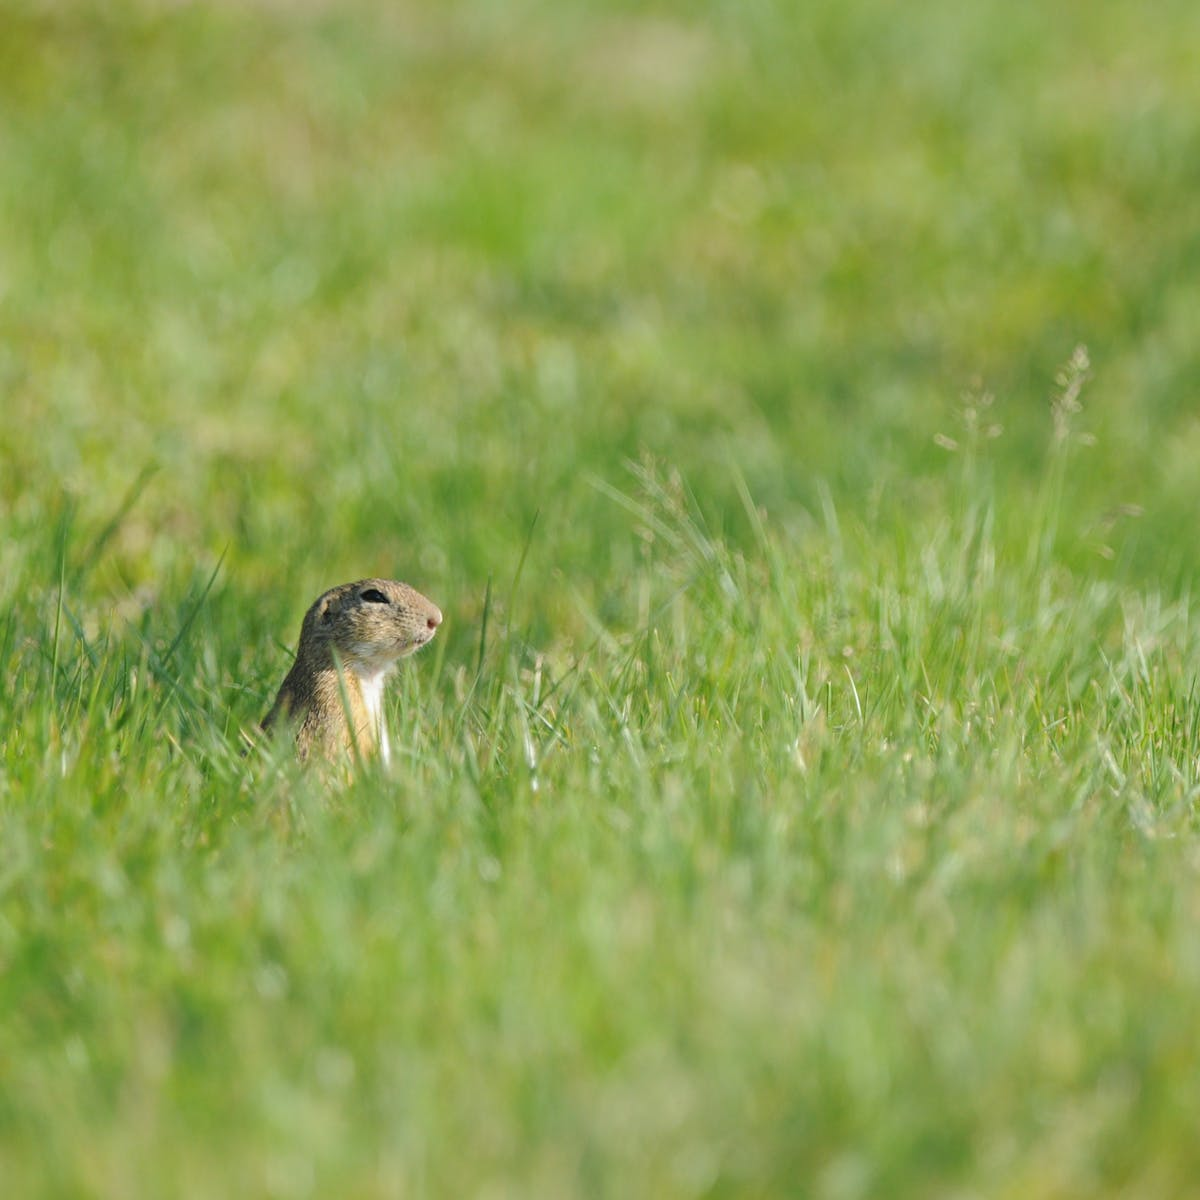 A ground squirrel pokes its head above a field of green grass